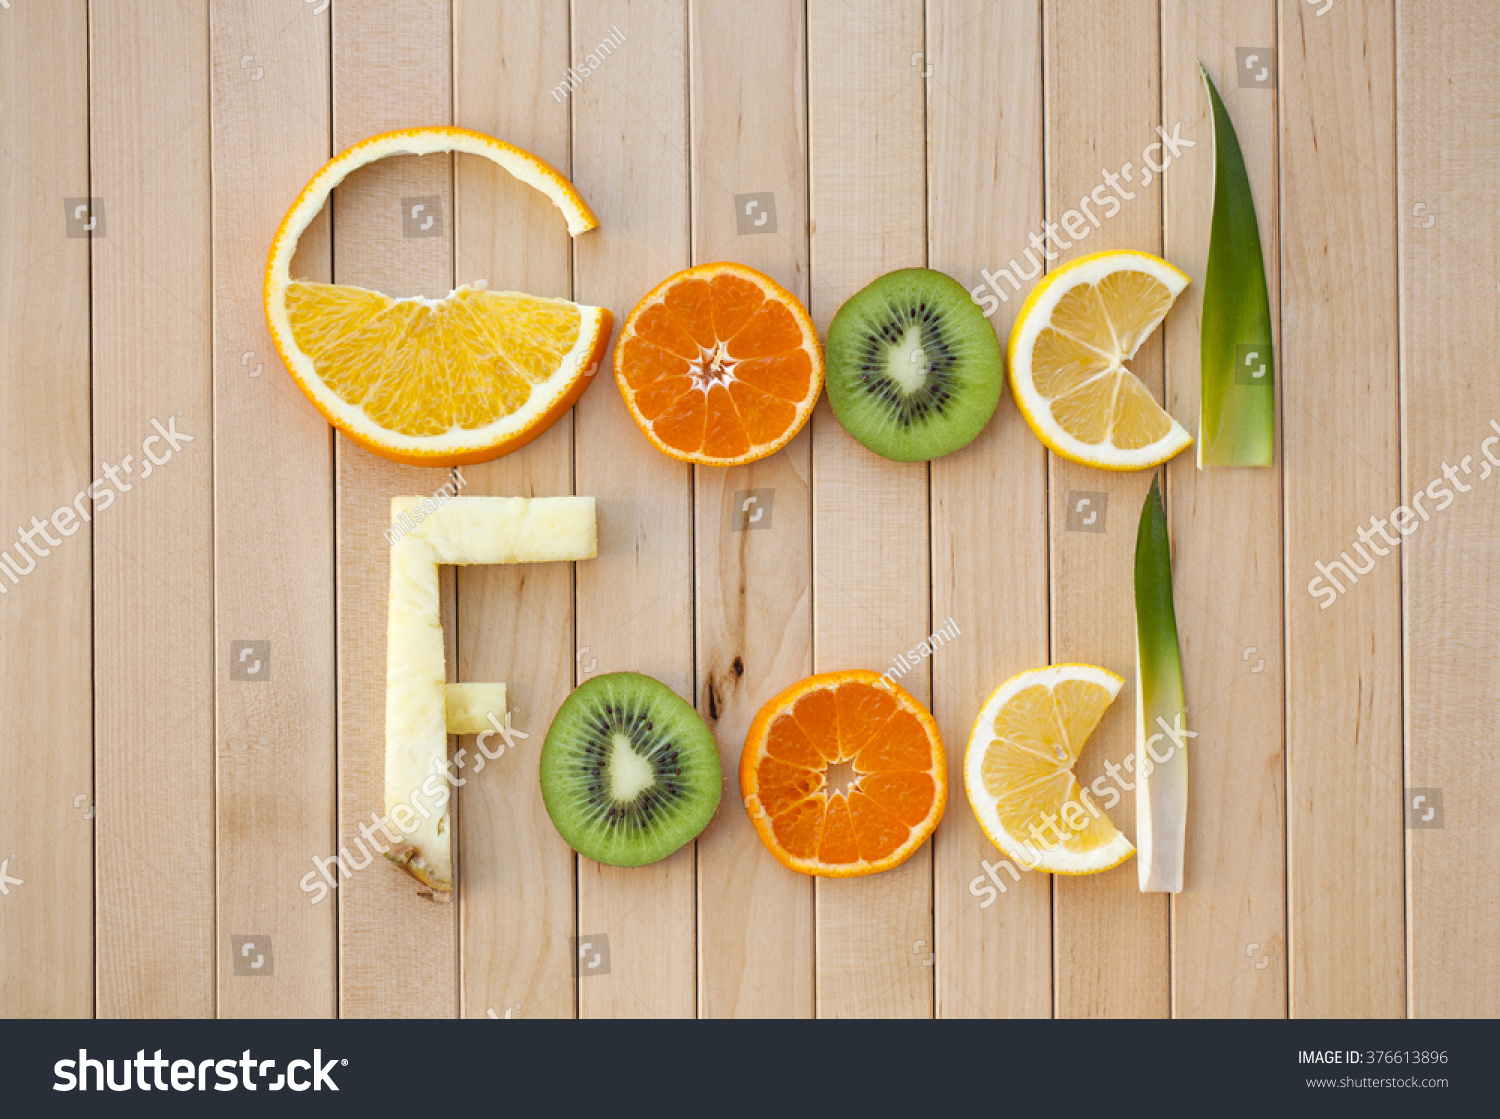 inscription tropical fruit good food letters stock photo 376613896 inscription from tropical fruit good food letters of sliced fruit on a wooden surface